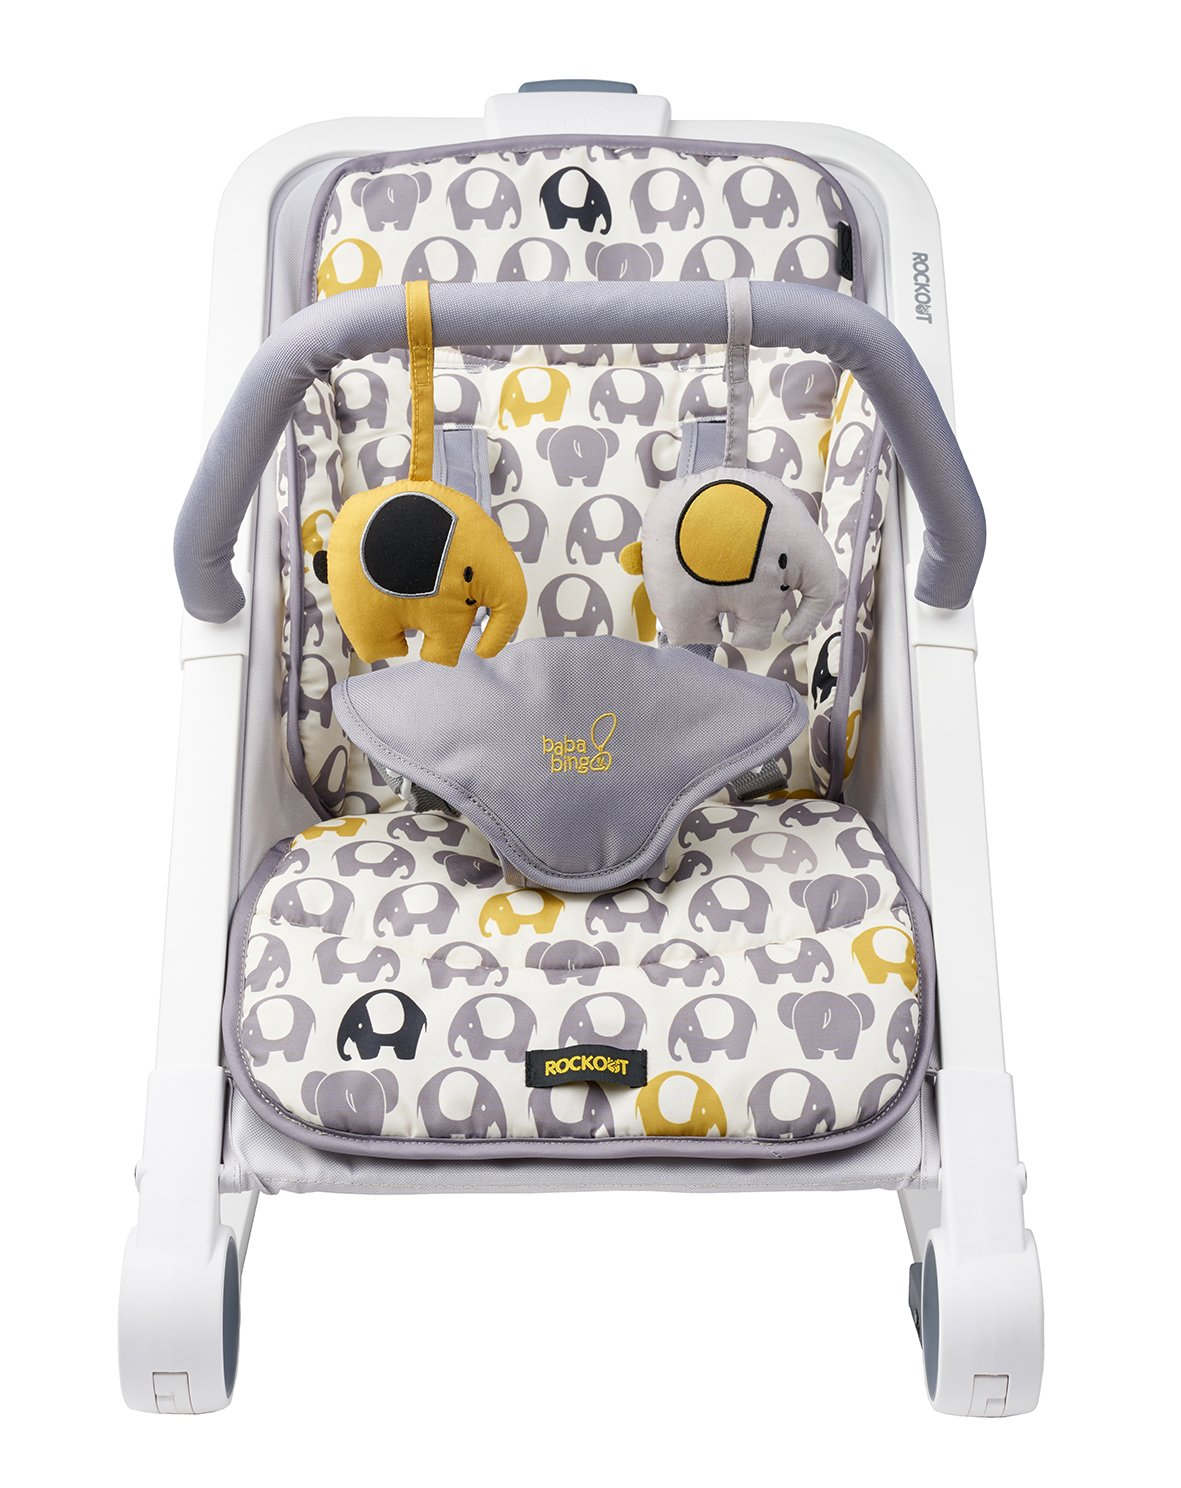 BabaBing! Rock Out Baby Rocker/Bouncer, Nellie The Elephant baba bing BB50-003